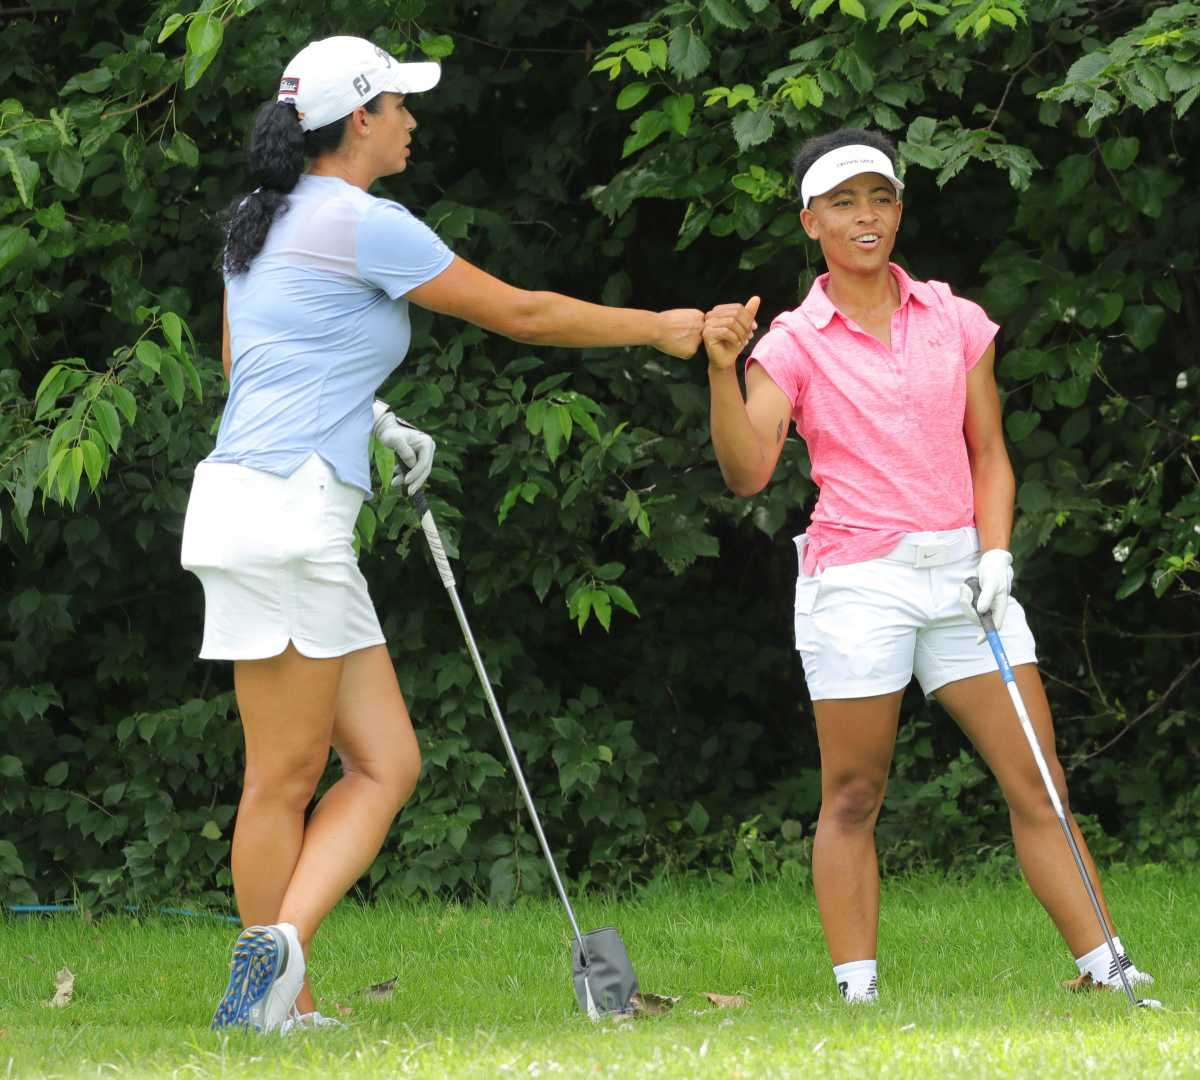 Shasta Averyhardt (left) andAnita Uwada teamed to win the women's division of the John Shippen National Invitational on Monday and a spot in a LPGA team event in two weeks.